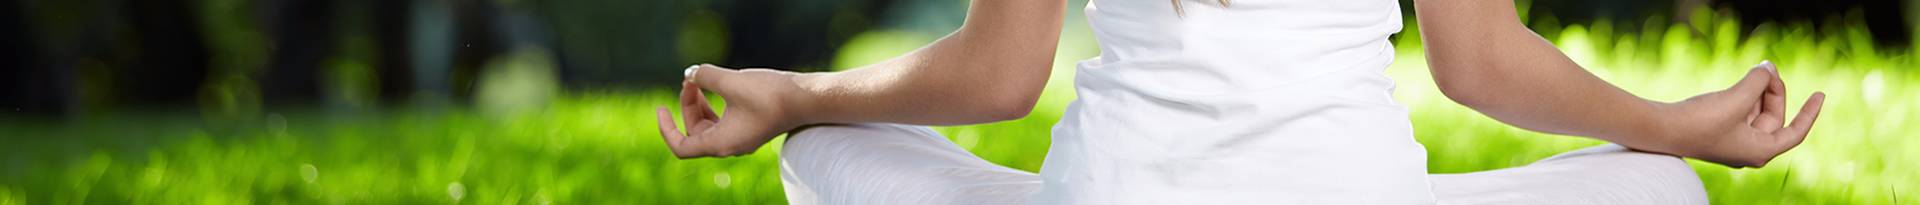 Meditation Classes in Chicago, Meditation for Pain ...